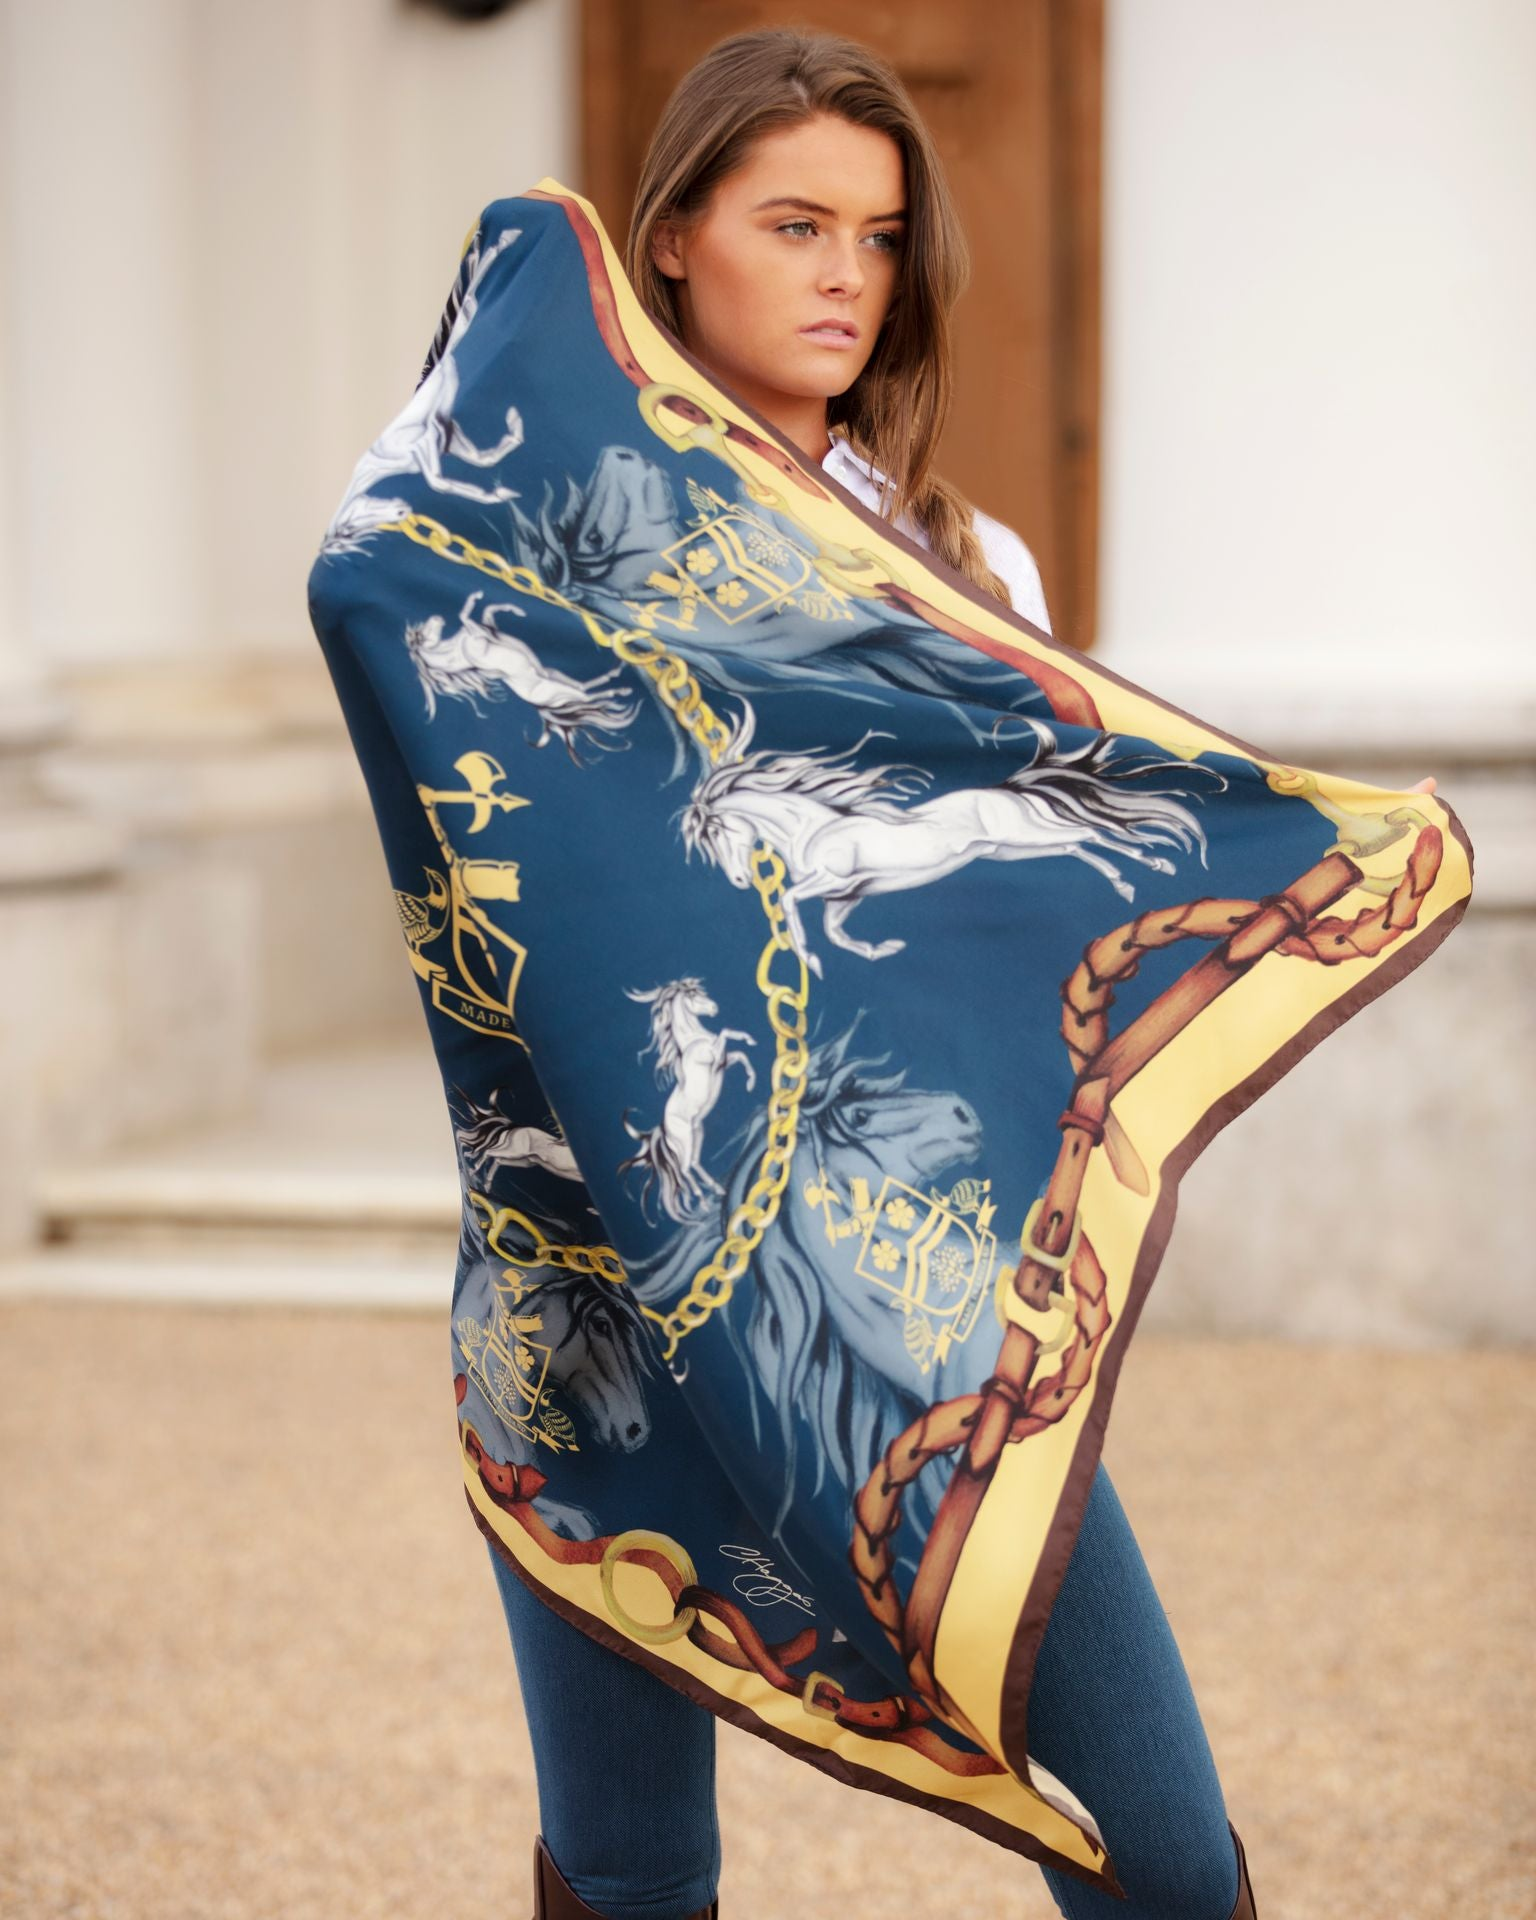 Hold Your Horse Silk Scarf by Clare Haggis - Navy & Gold